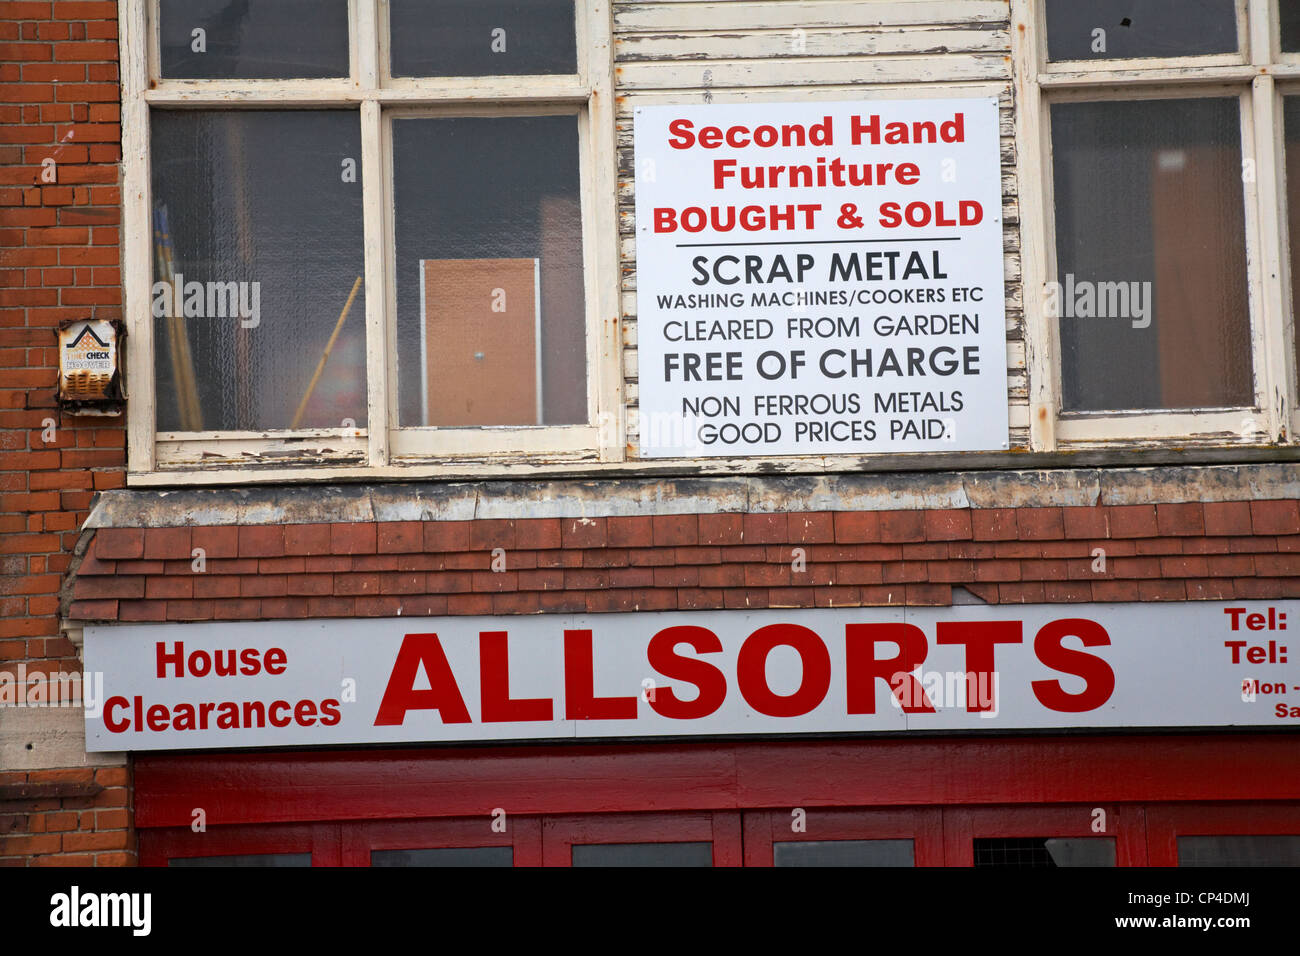 Allsorts house clearances second hand furniture bought & sold shop front at Weymouth in April - Stock Image